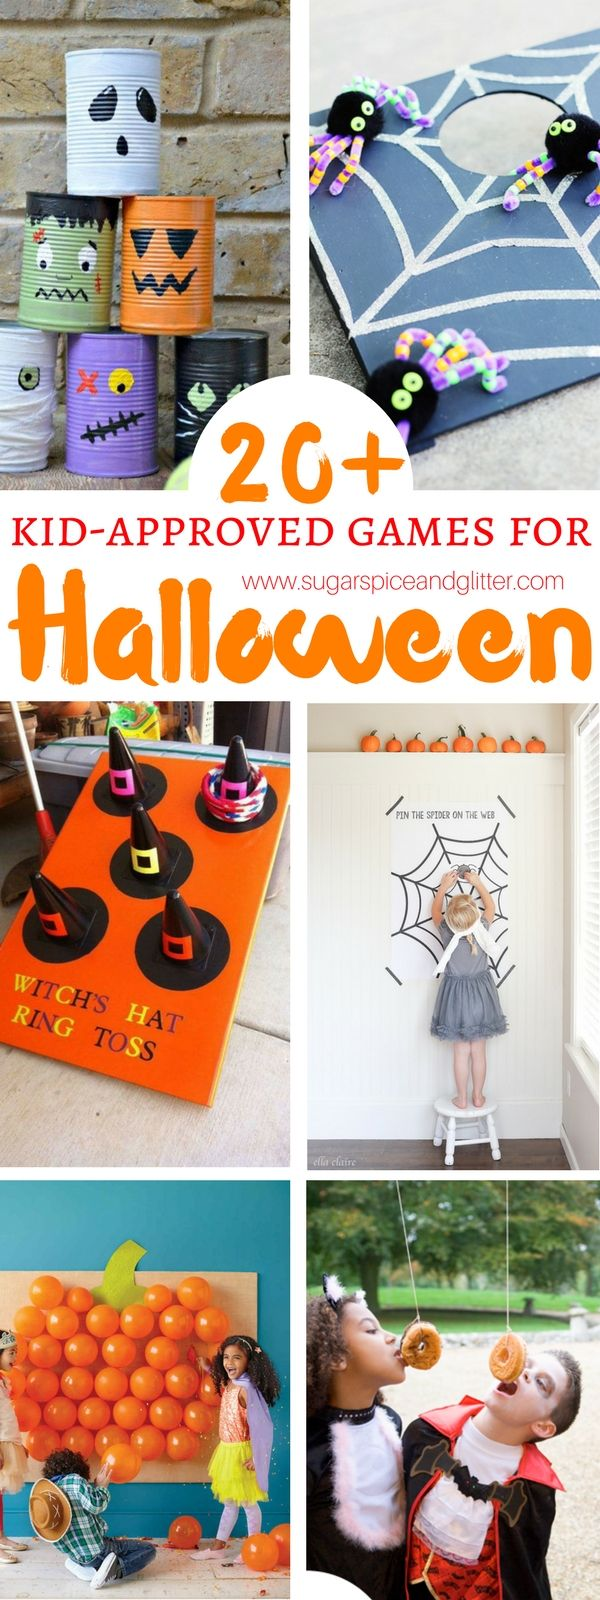 20 Kid-approved games for Halloween - all of your Halloween party planning done for you. These games can even be made by kids and would work great indoors or outdoors.